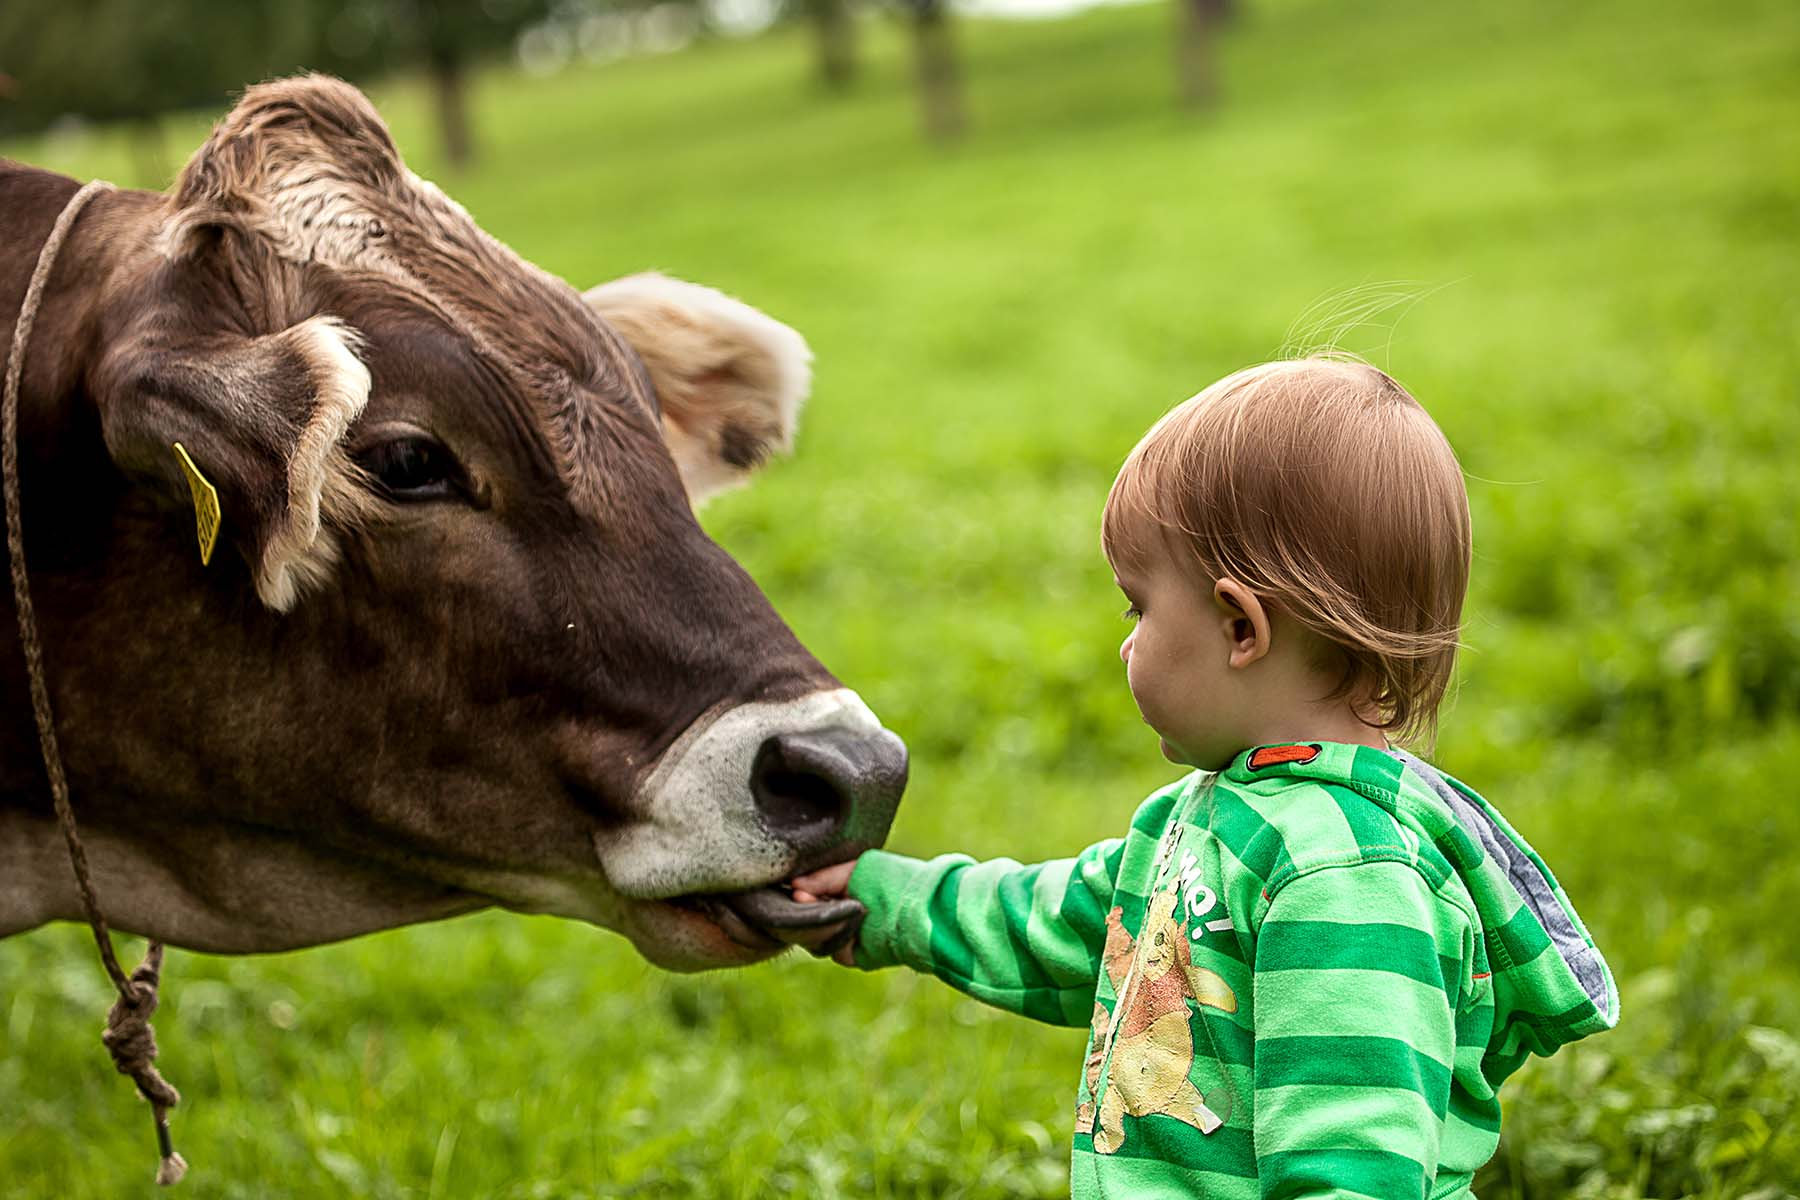 A closeup of a cow in the field kissing a child's outstretched hand.